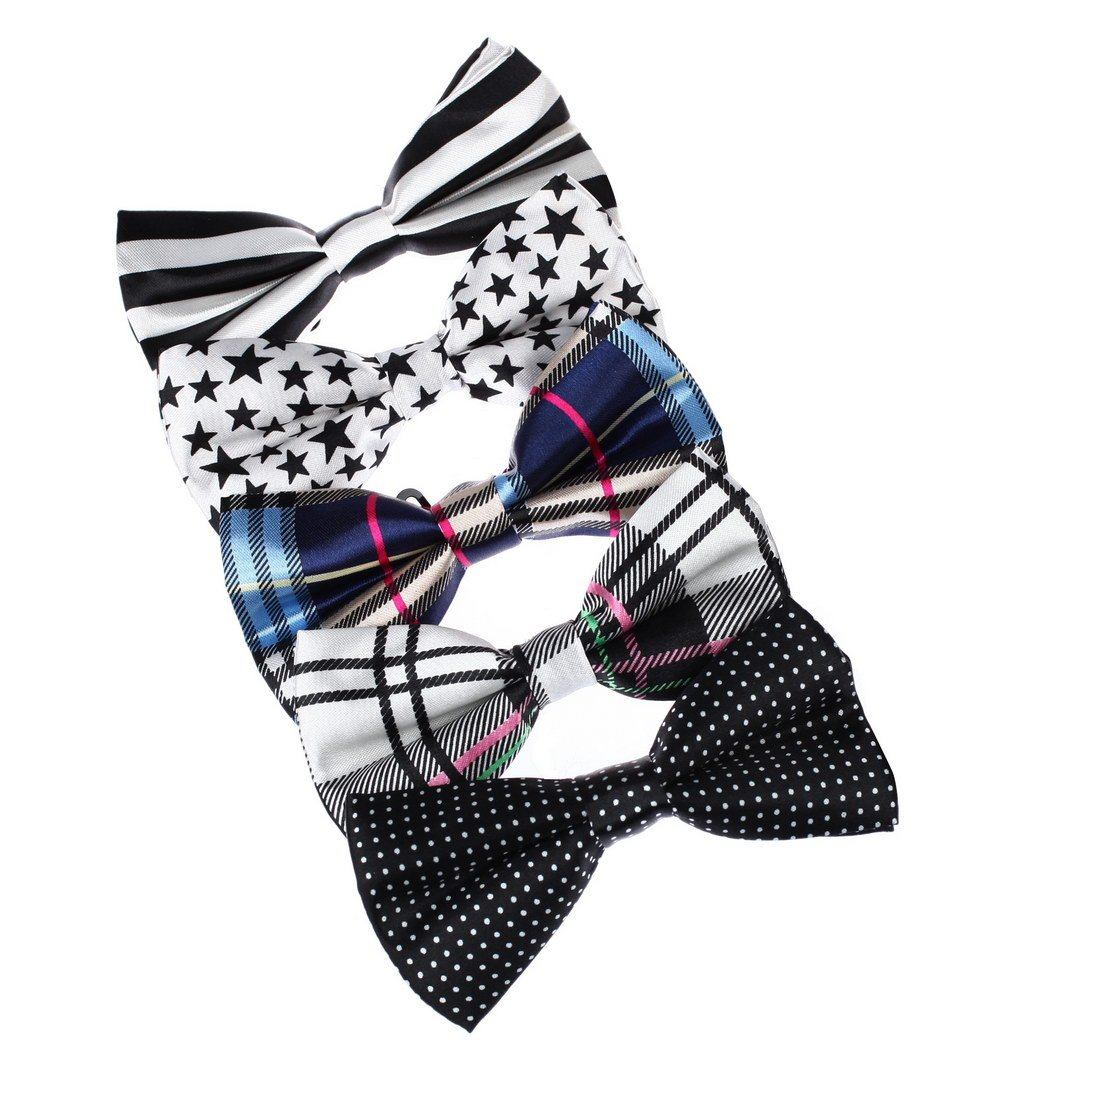 DBF0101 Fashion Mens Bow Ties for Xmas Day 5 Package Gift Set Dan Smith